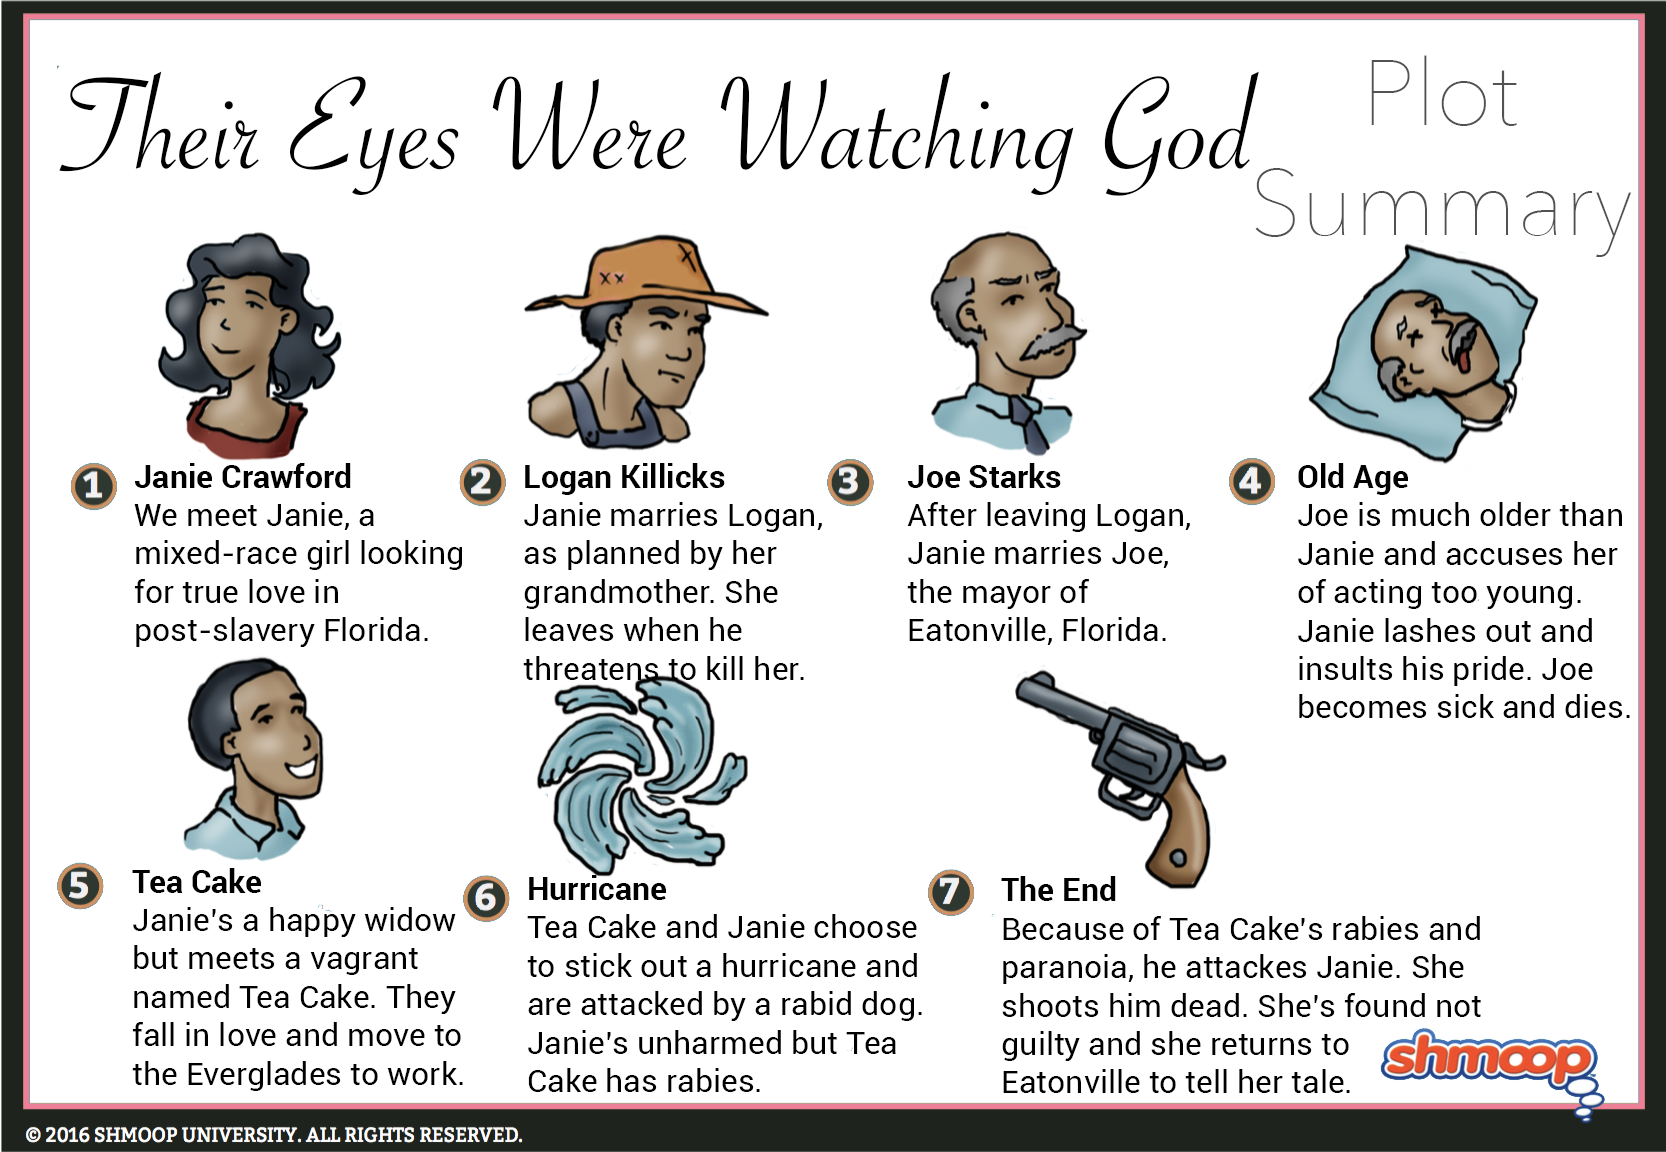 a summary of their eyes were watching god a novel by zora neale hurston Their eyes were watching god a novel and pathos found only in the writing of zora neale hurston their eyes were watching god by.